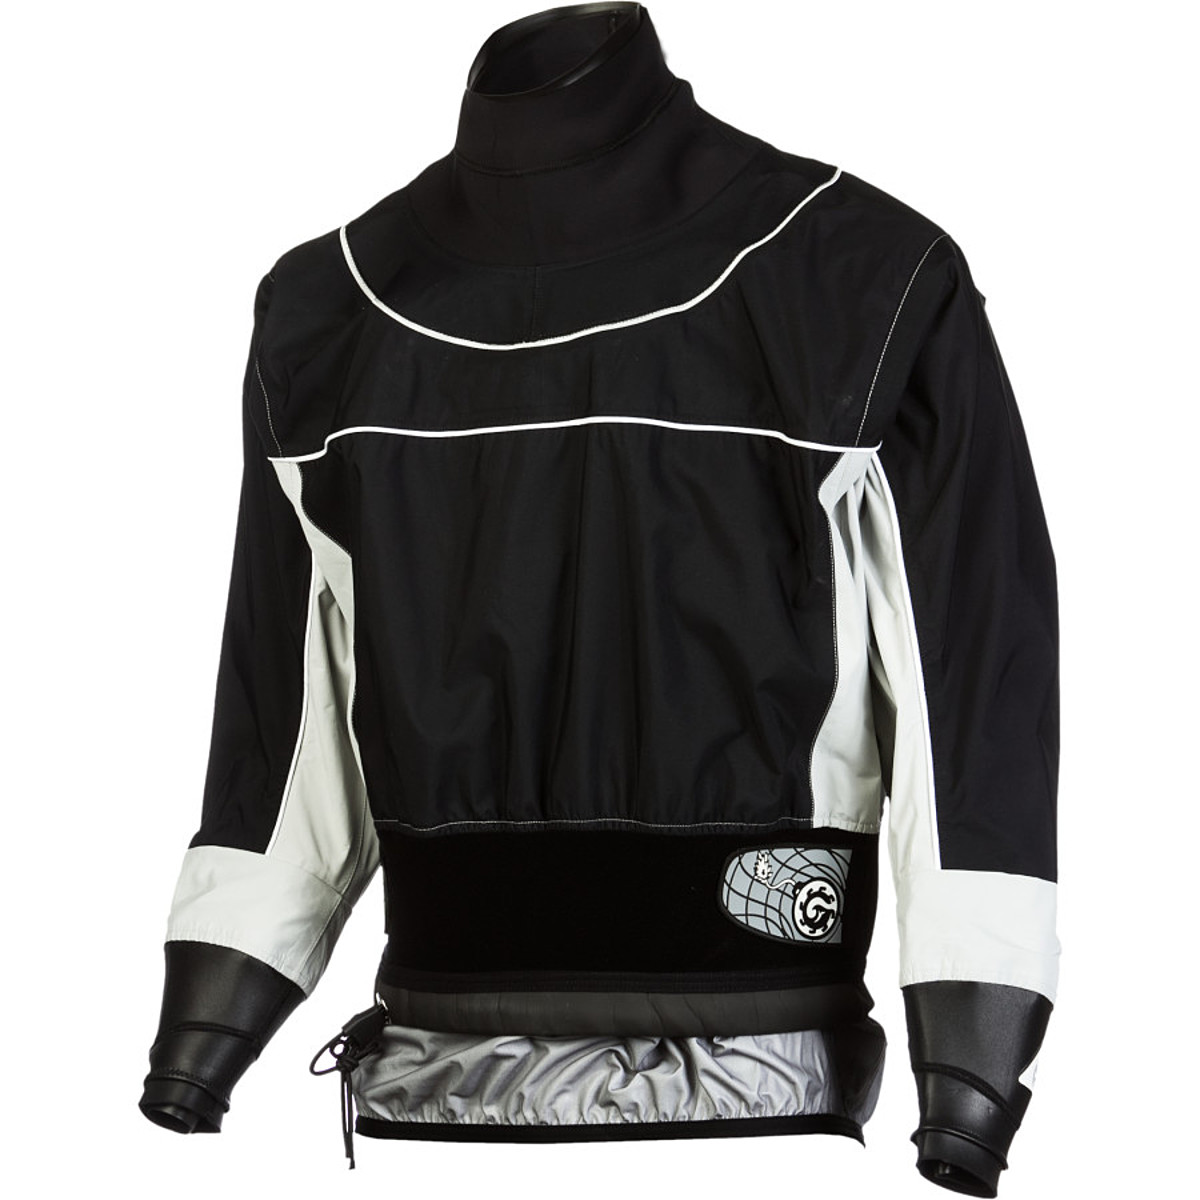 Bomber Gear Bomb Dry Top - Long-Sleeve